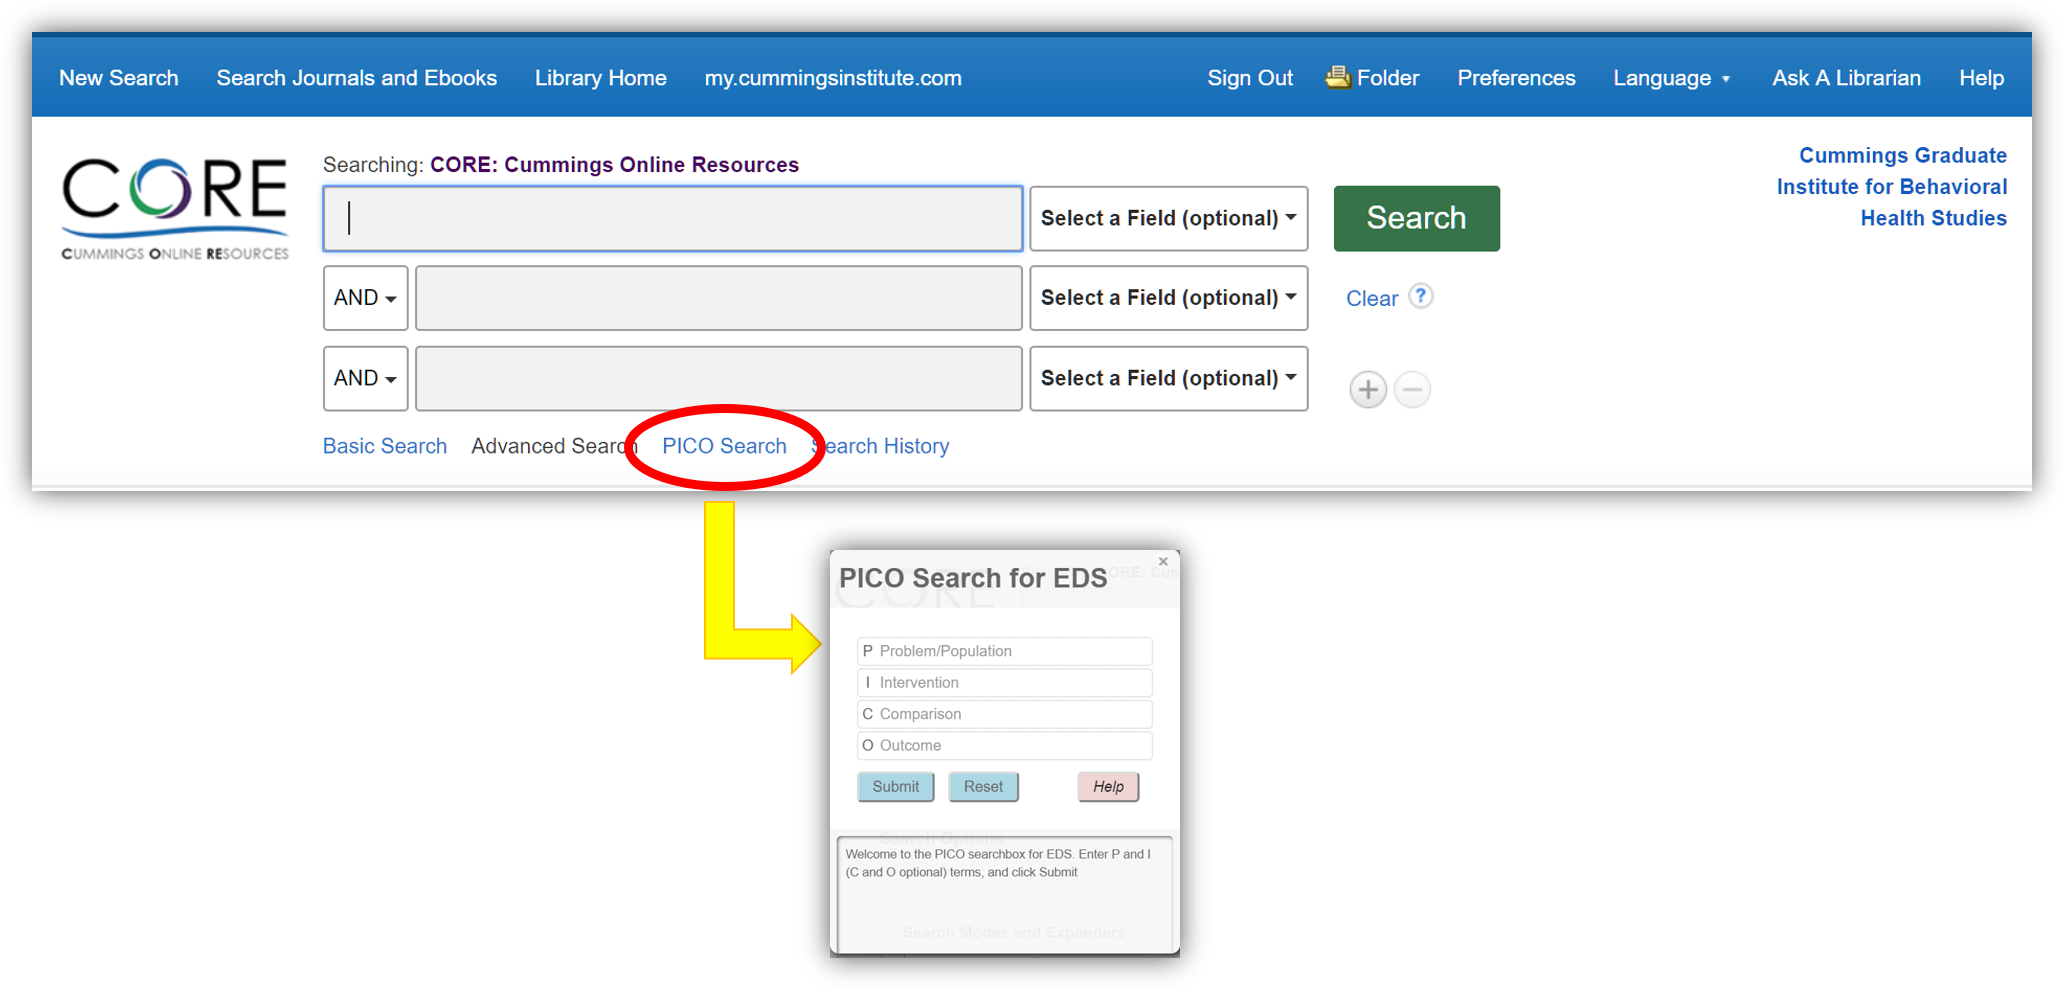 A special PICO search box is available in the CORE Library.